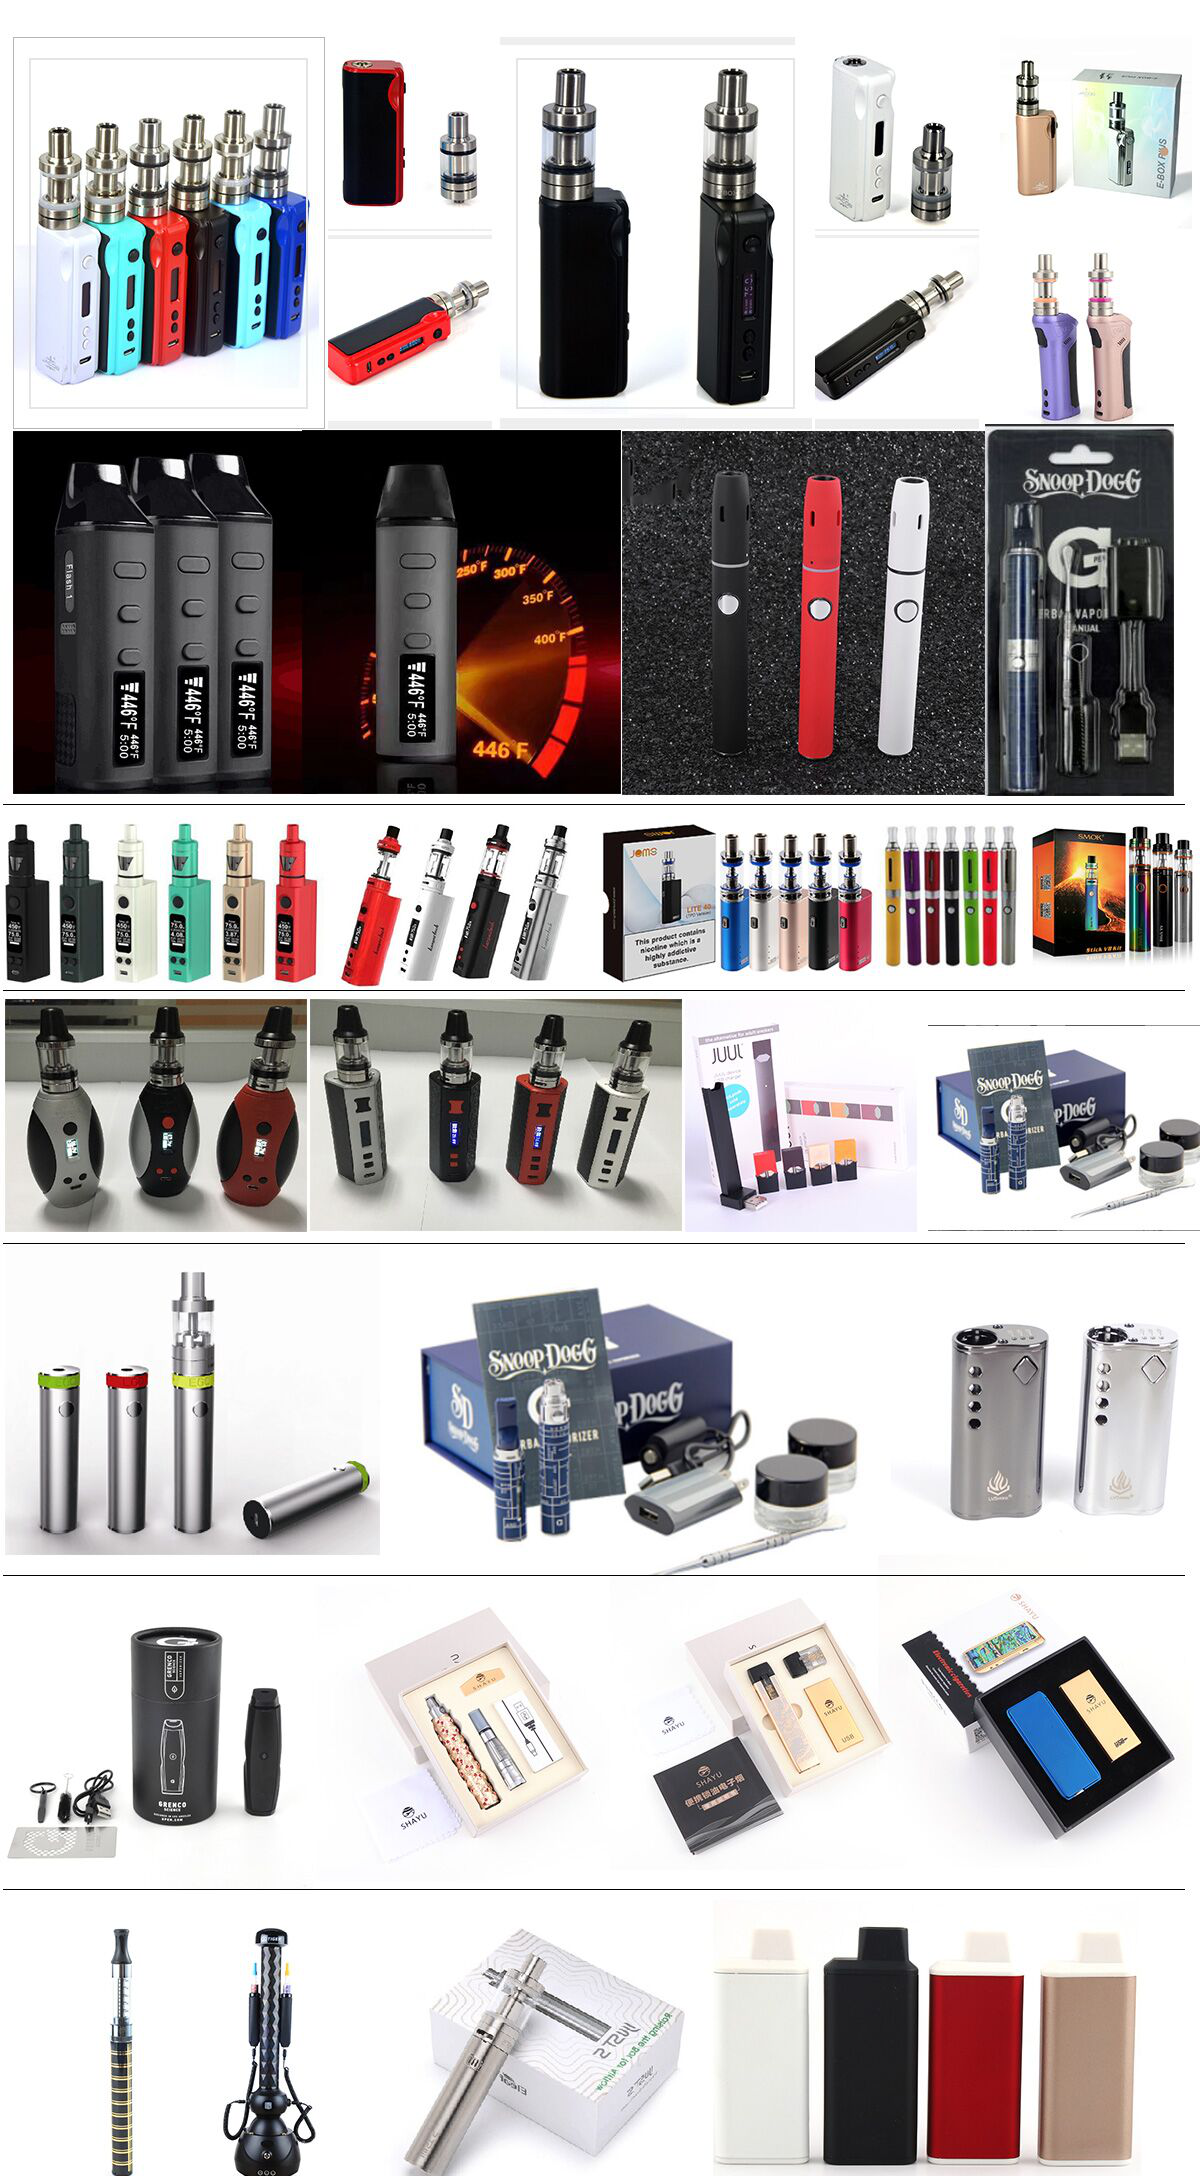 Kaiwei JL-186EC e liquid plastic bottle Disposable flavours hookah vaper pen e cig tobacco e juice E-cigarette Shisha